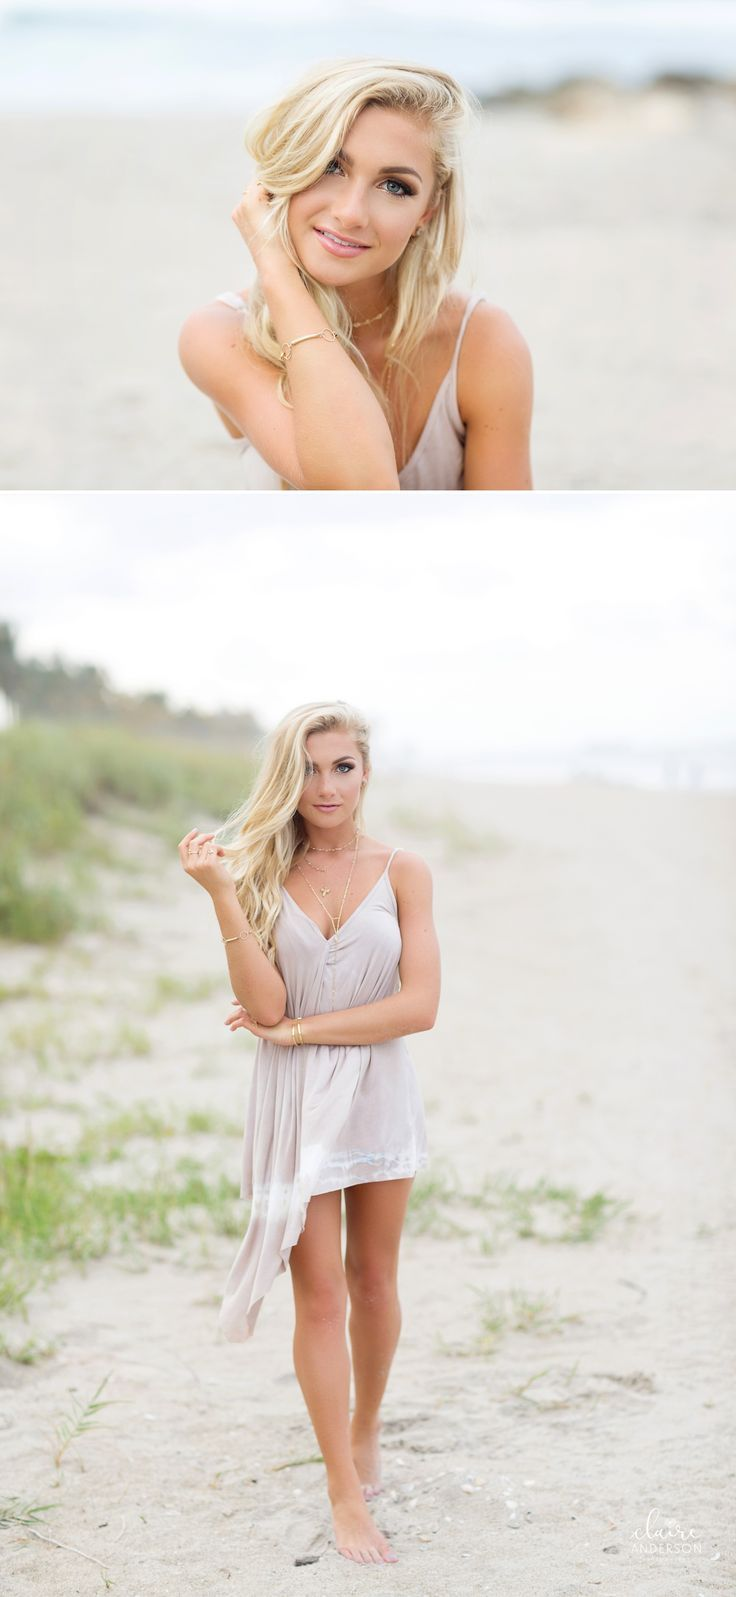 Spring senior photography spring beach senior pictures natural light dress what … – Elizabeth Nord Photography | Photographer, Educator, & Travel Enthusiast